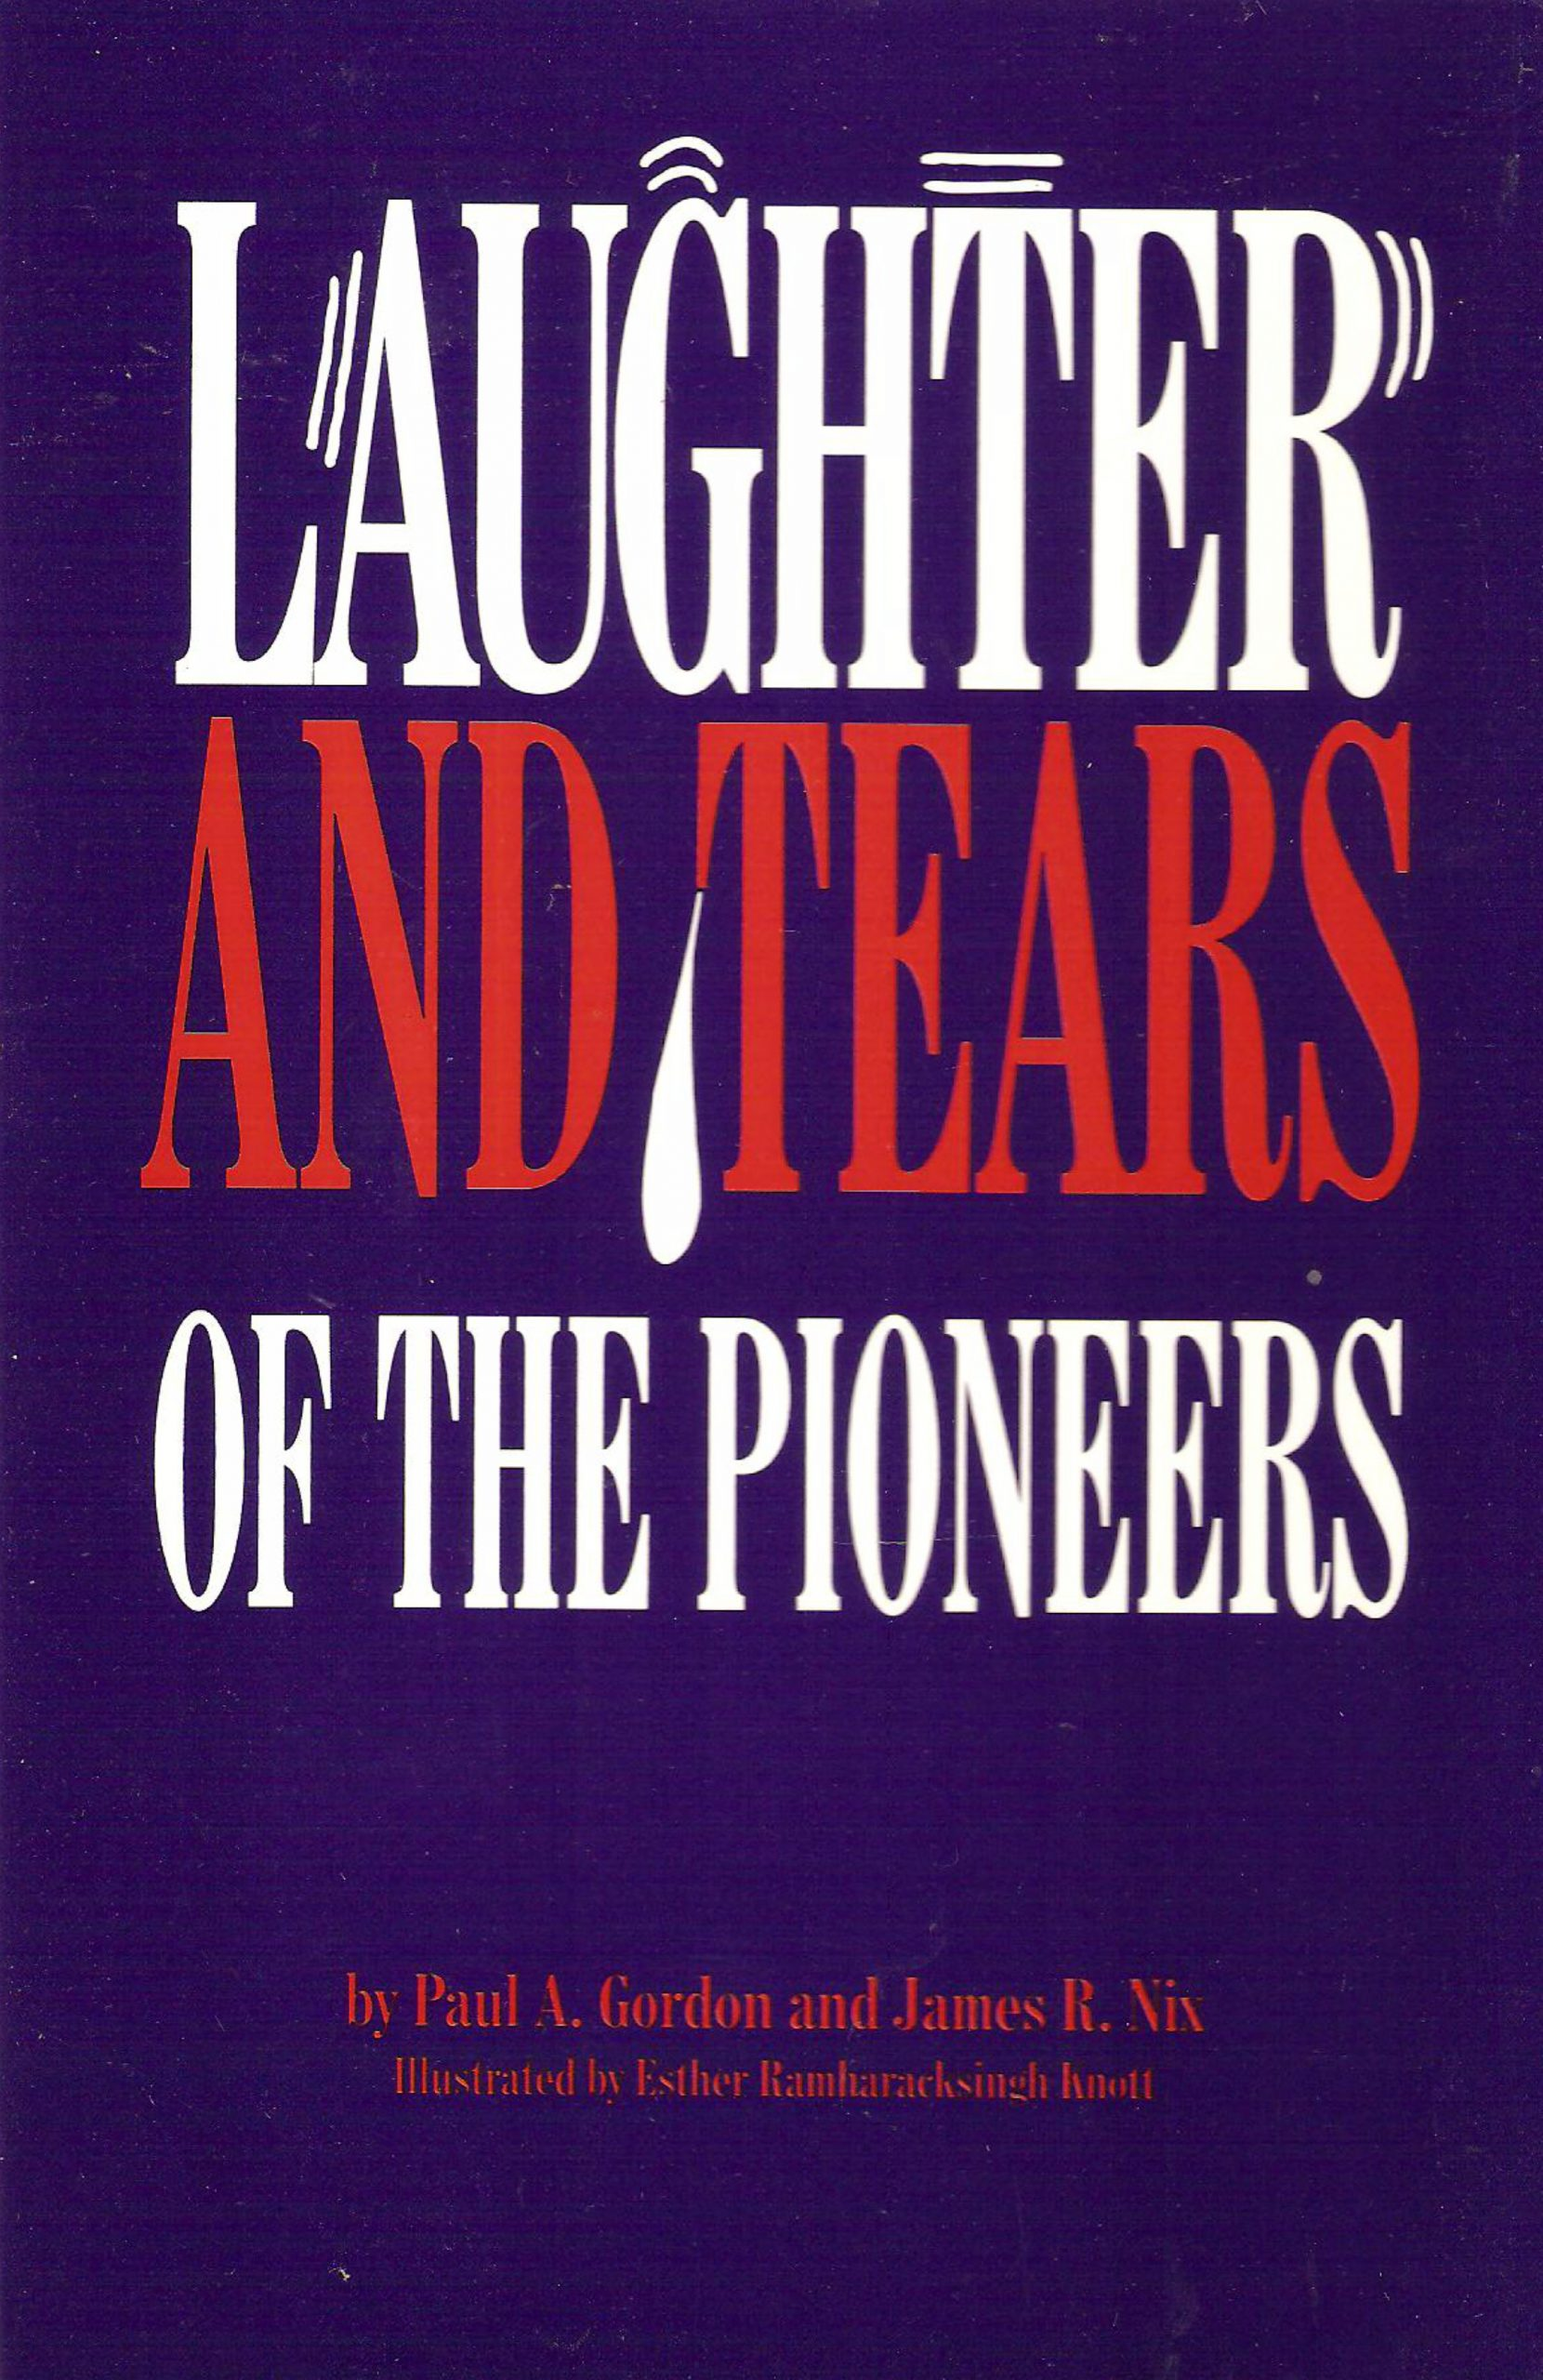 Laughter and Tears of the Pioneers